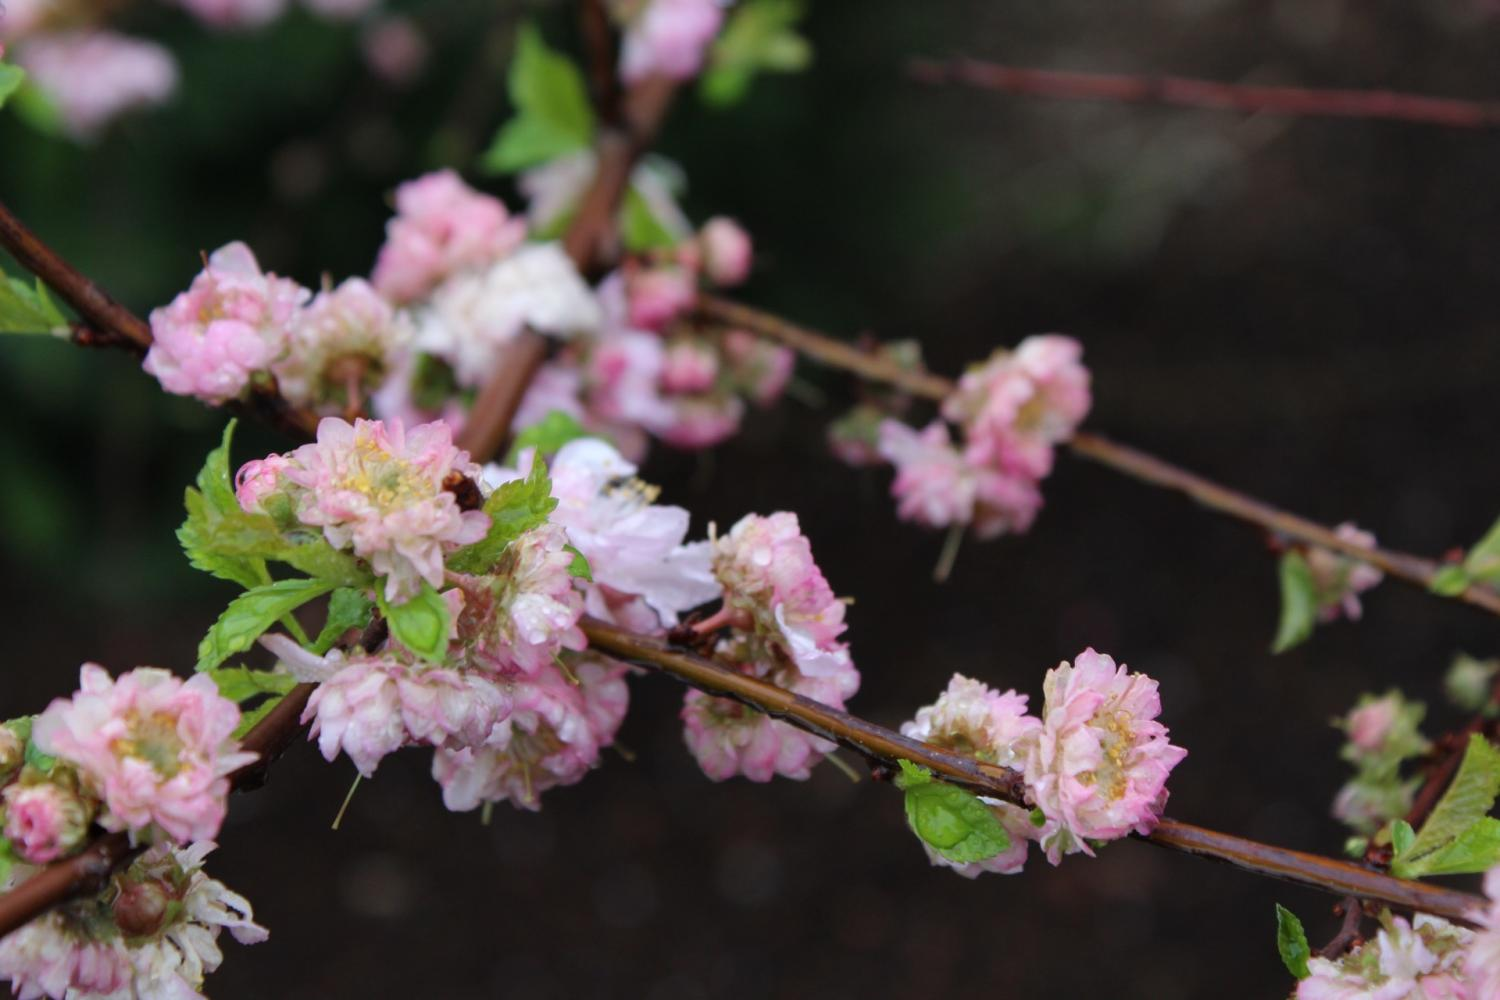 This picture is taken at the Ashton Gardens on April 16 it is a picture of a bush in bloom.